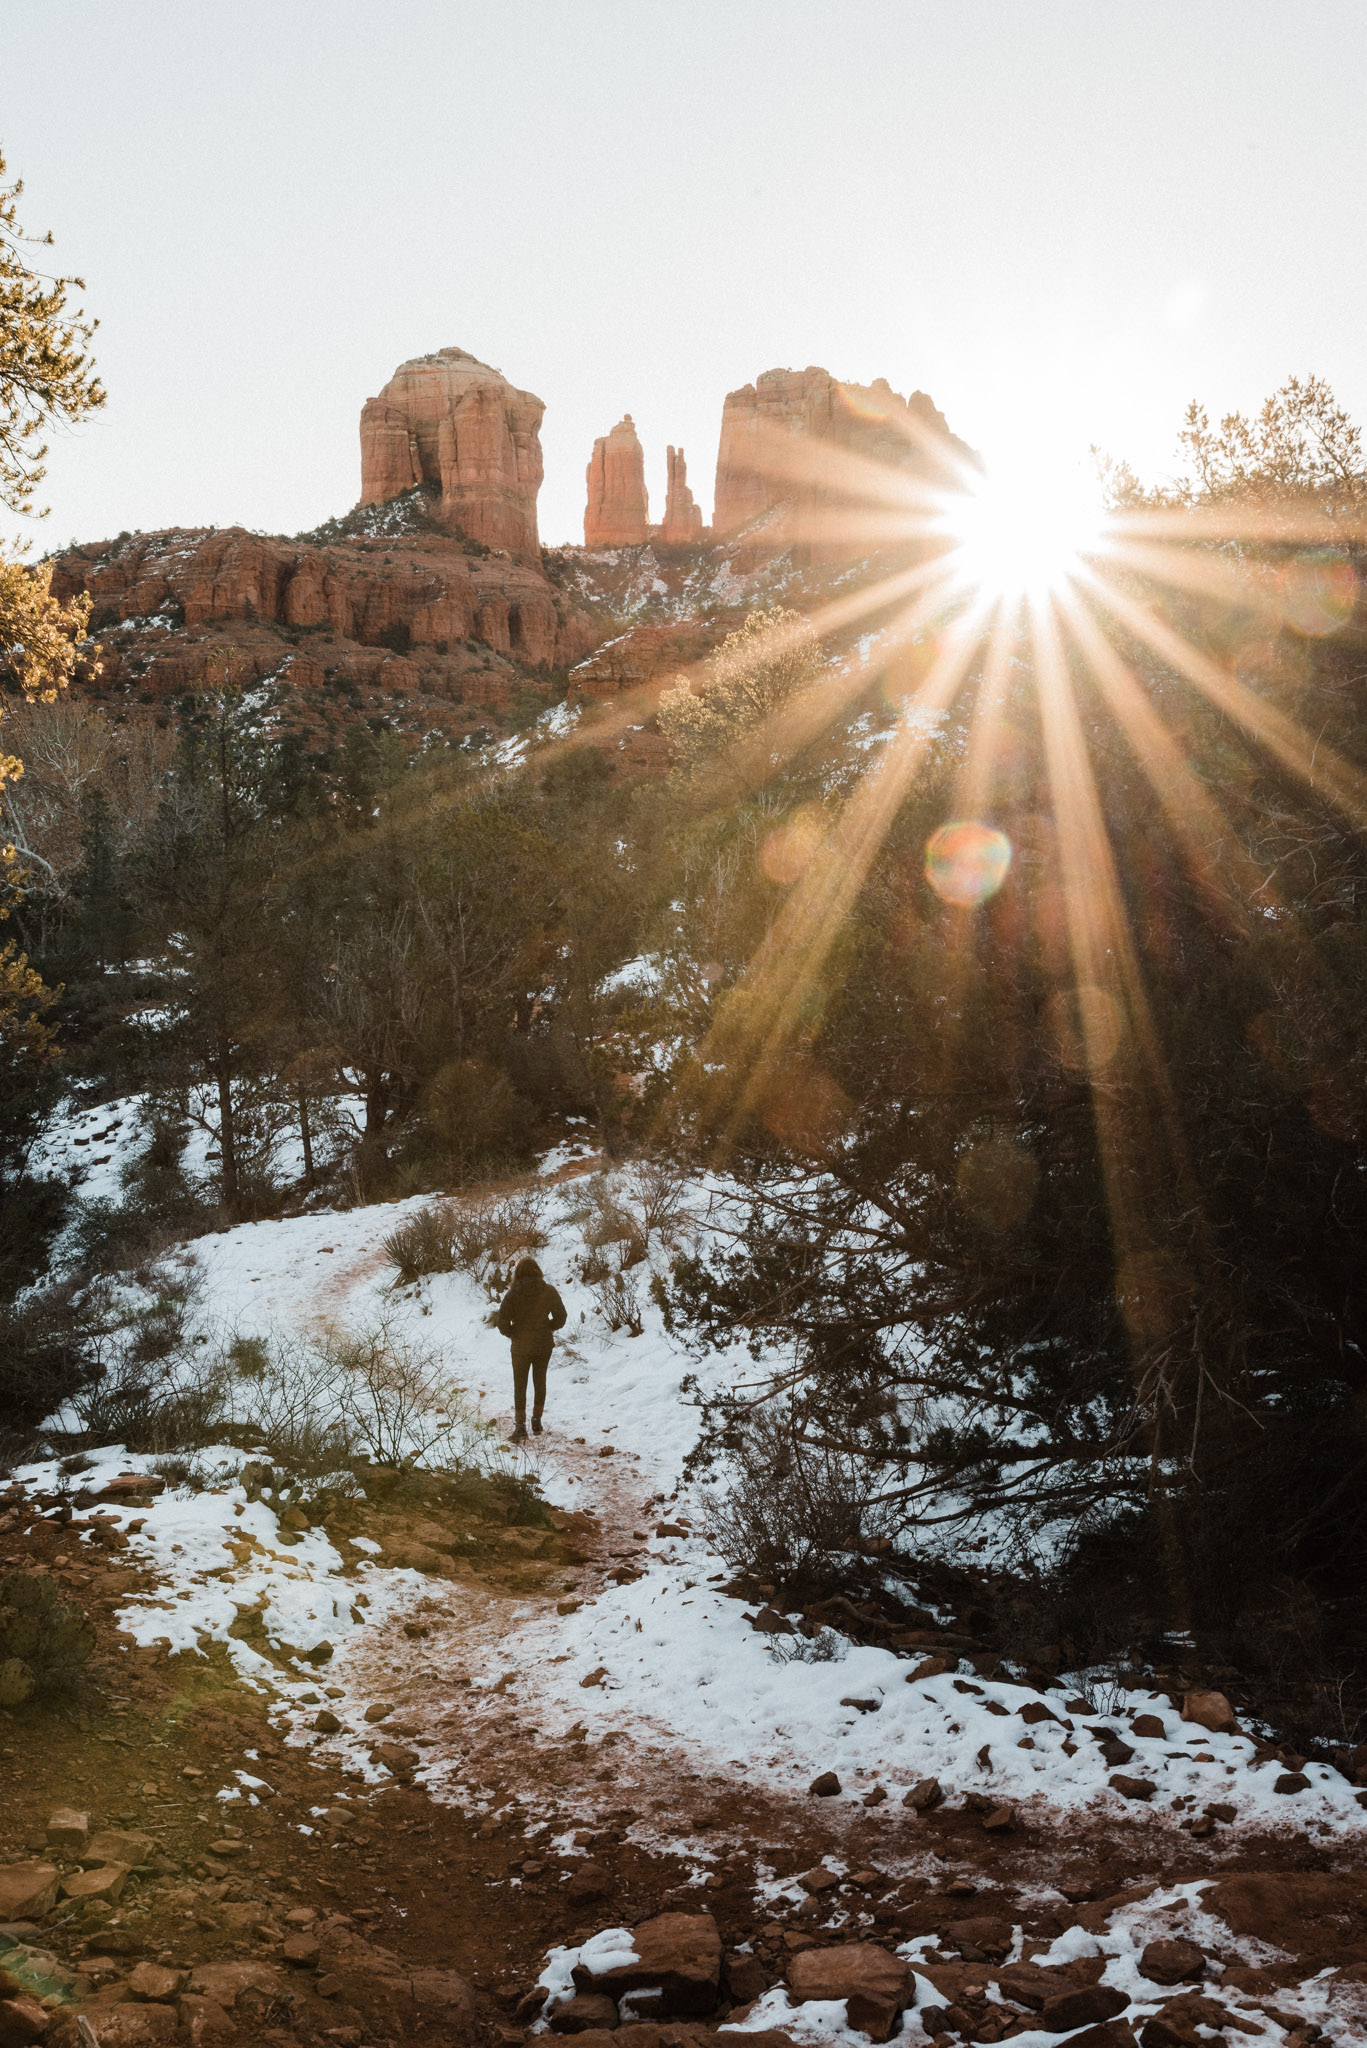 Tanner Burge Photography, Sedona Arizona, The Grand Canyon, Page AZ, Travel Blog, Adventure Photography, Snowy Landscapes, Winter in the Desert, Winter at the Grand Canyon, Grand Canyon Travel Guide, Sedona Travel Guide, Page AZ Travel Guide,  National Park Photography, South Rim of the Grand Canyon, Snow at the Grand Canyon, Snow In Arizona, Arizona Hiking, Red Rocks State Park, Cathedral Rocks Trail, Cathedral Rocks Sunrise